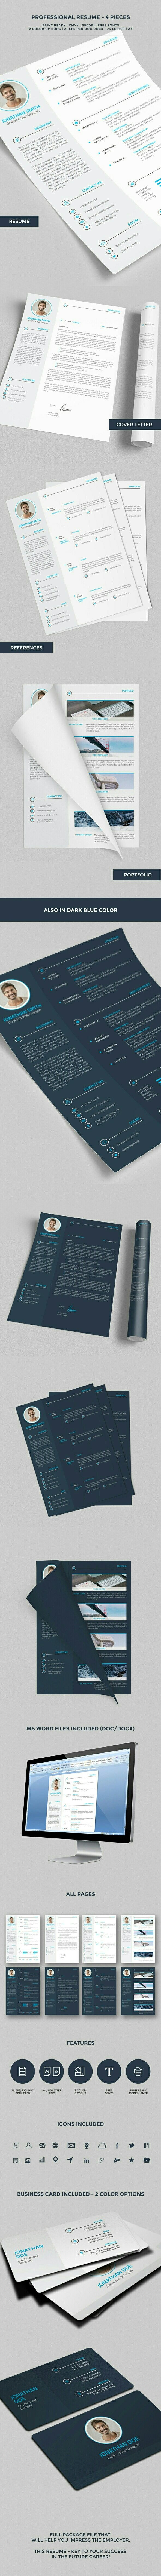 cosmetologist resume%0A Professional Resume   CV    Pieces on Behance